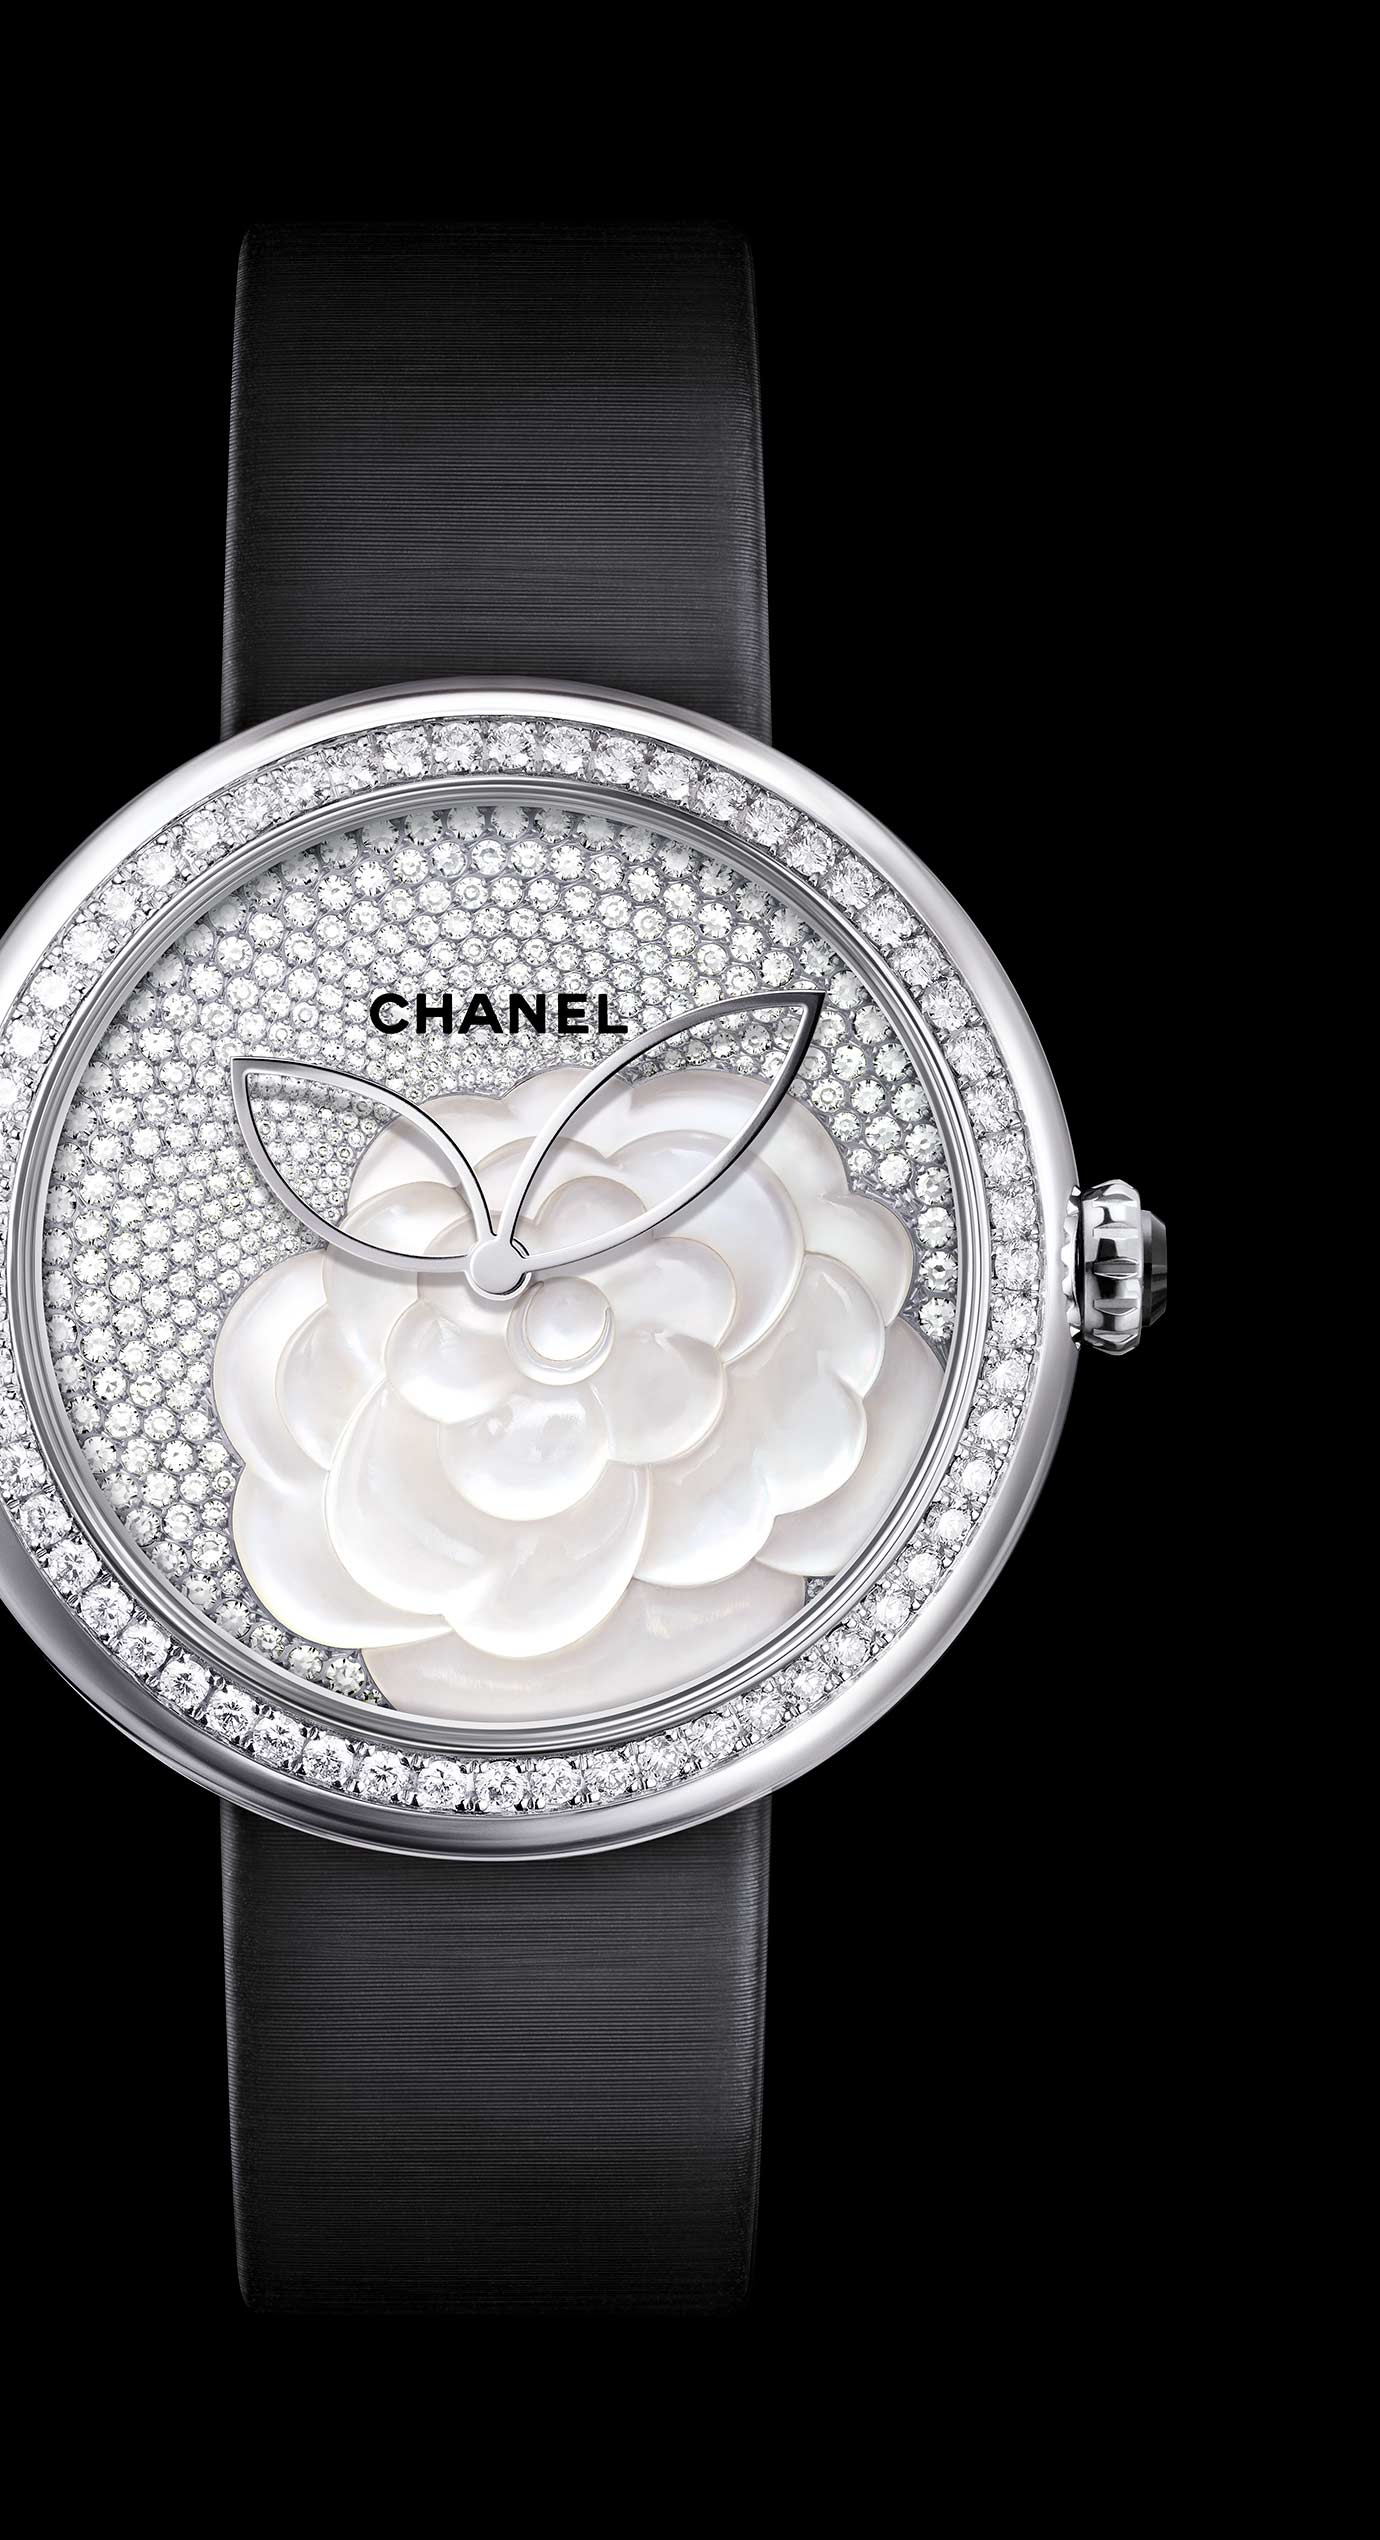 Mademoiselle Privé Camélia watch in pearl marquetry, dial set with diamonds - Enlarged view